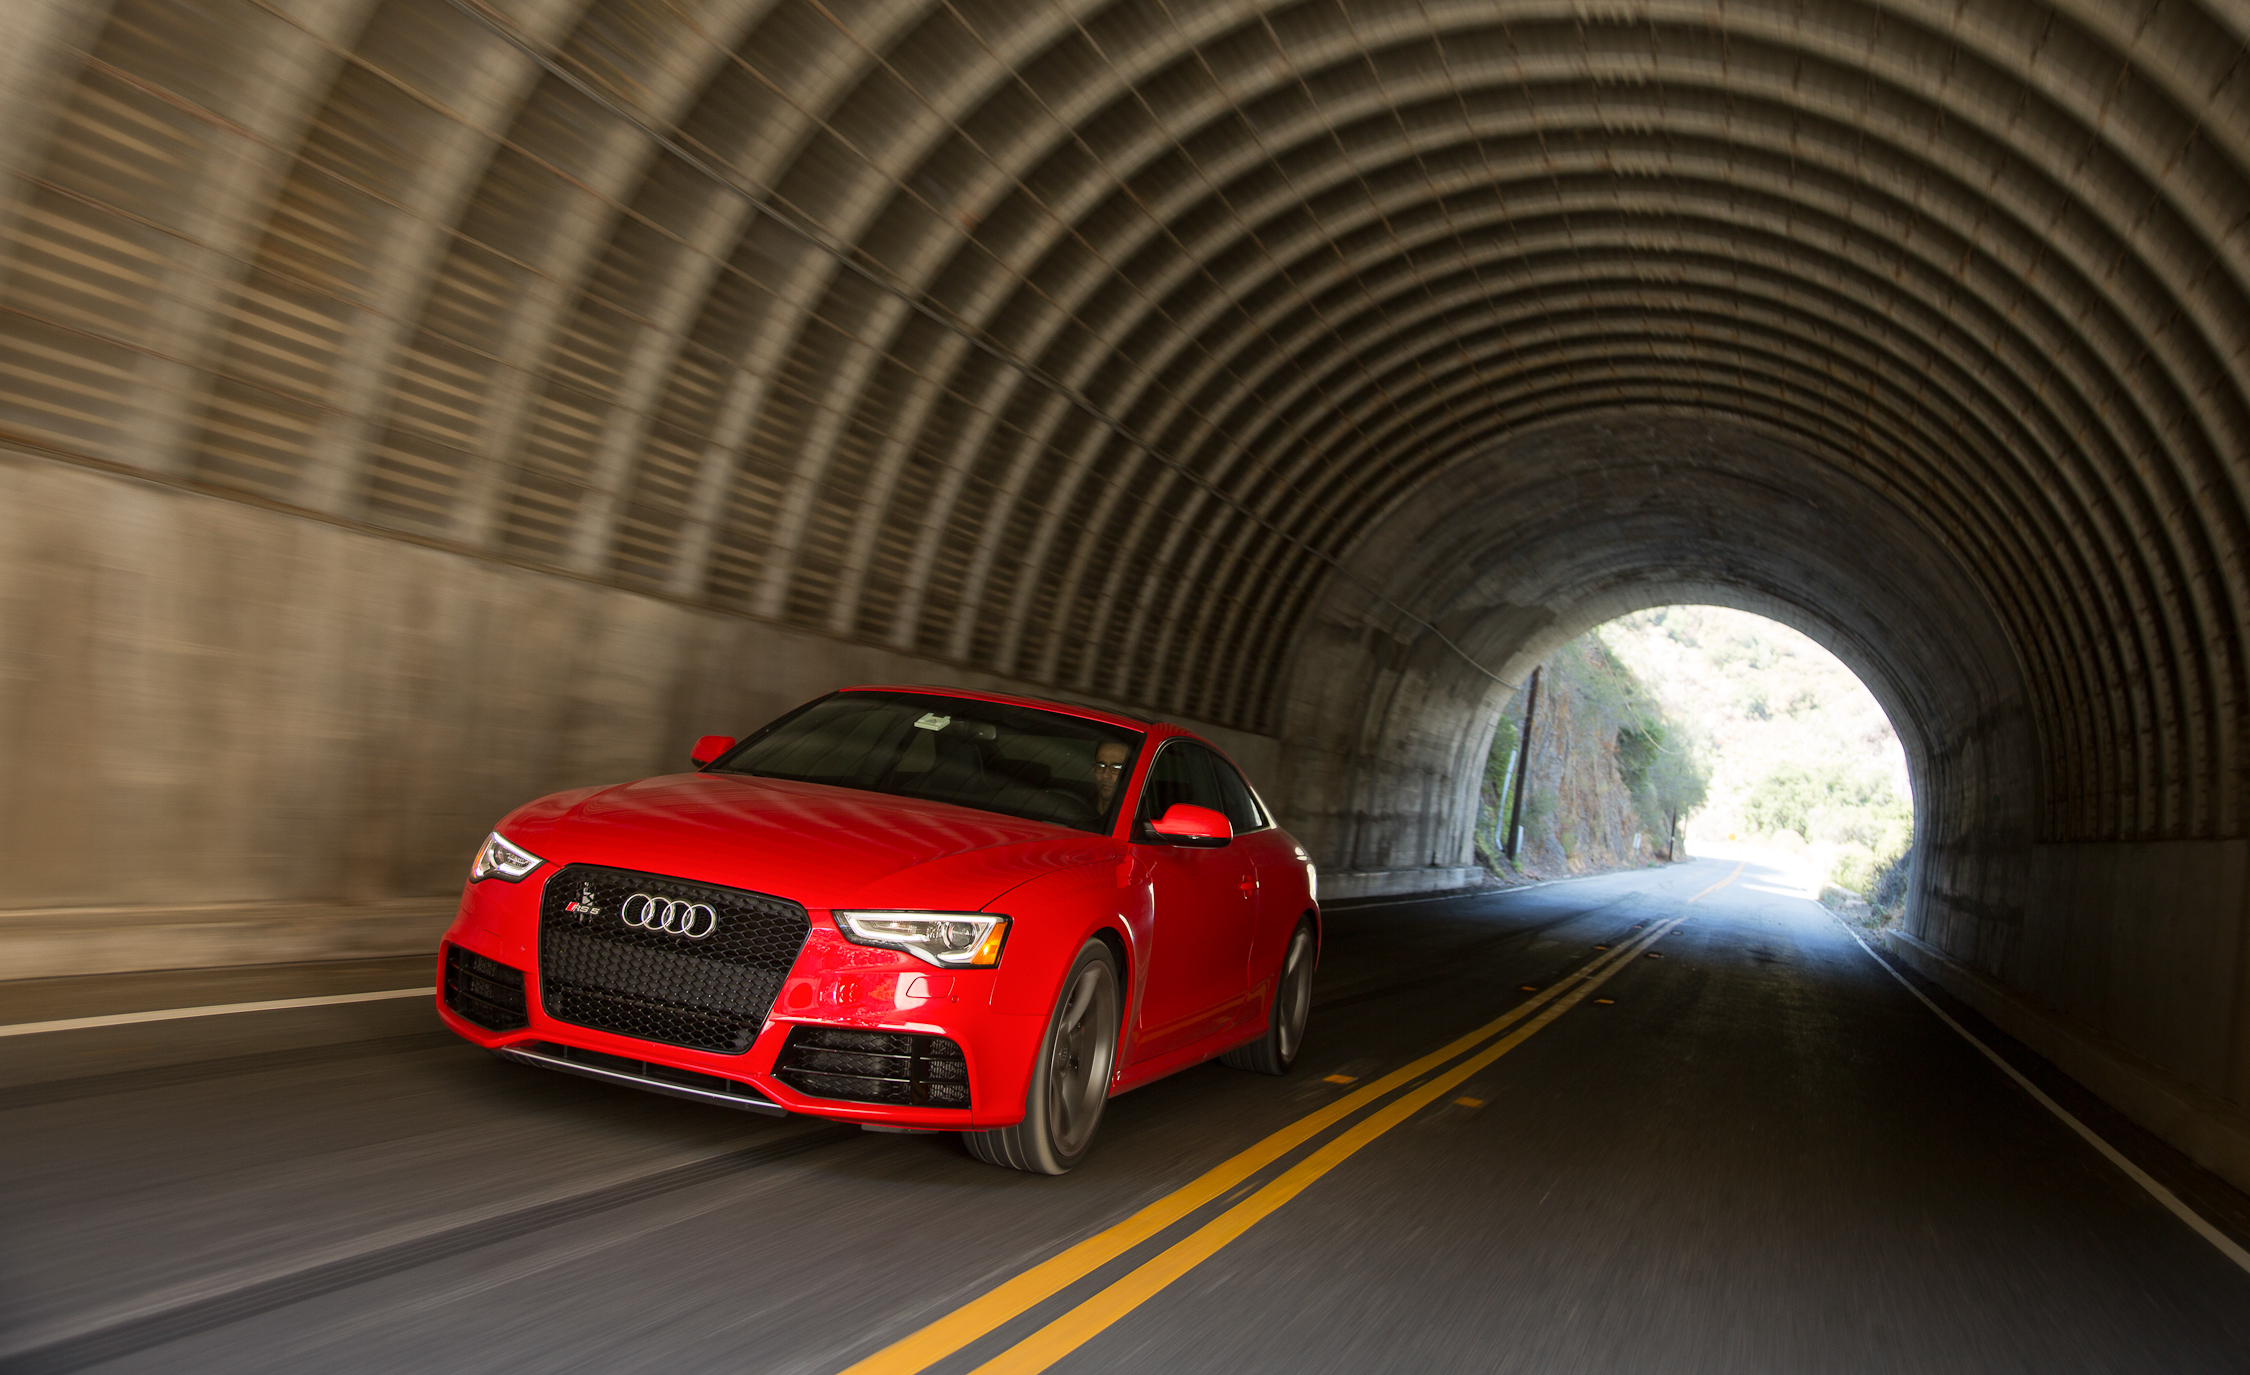 2013 Audi RS 5 Red Metallic (View 35 of 41)